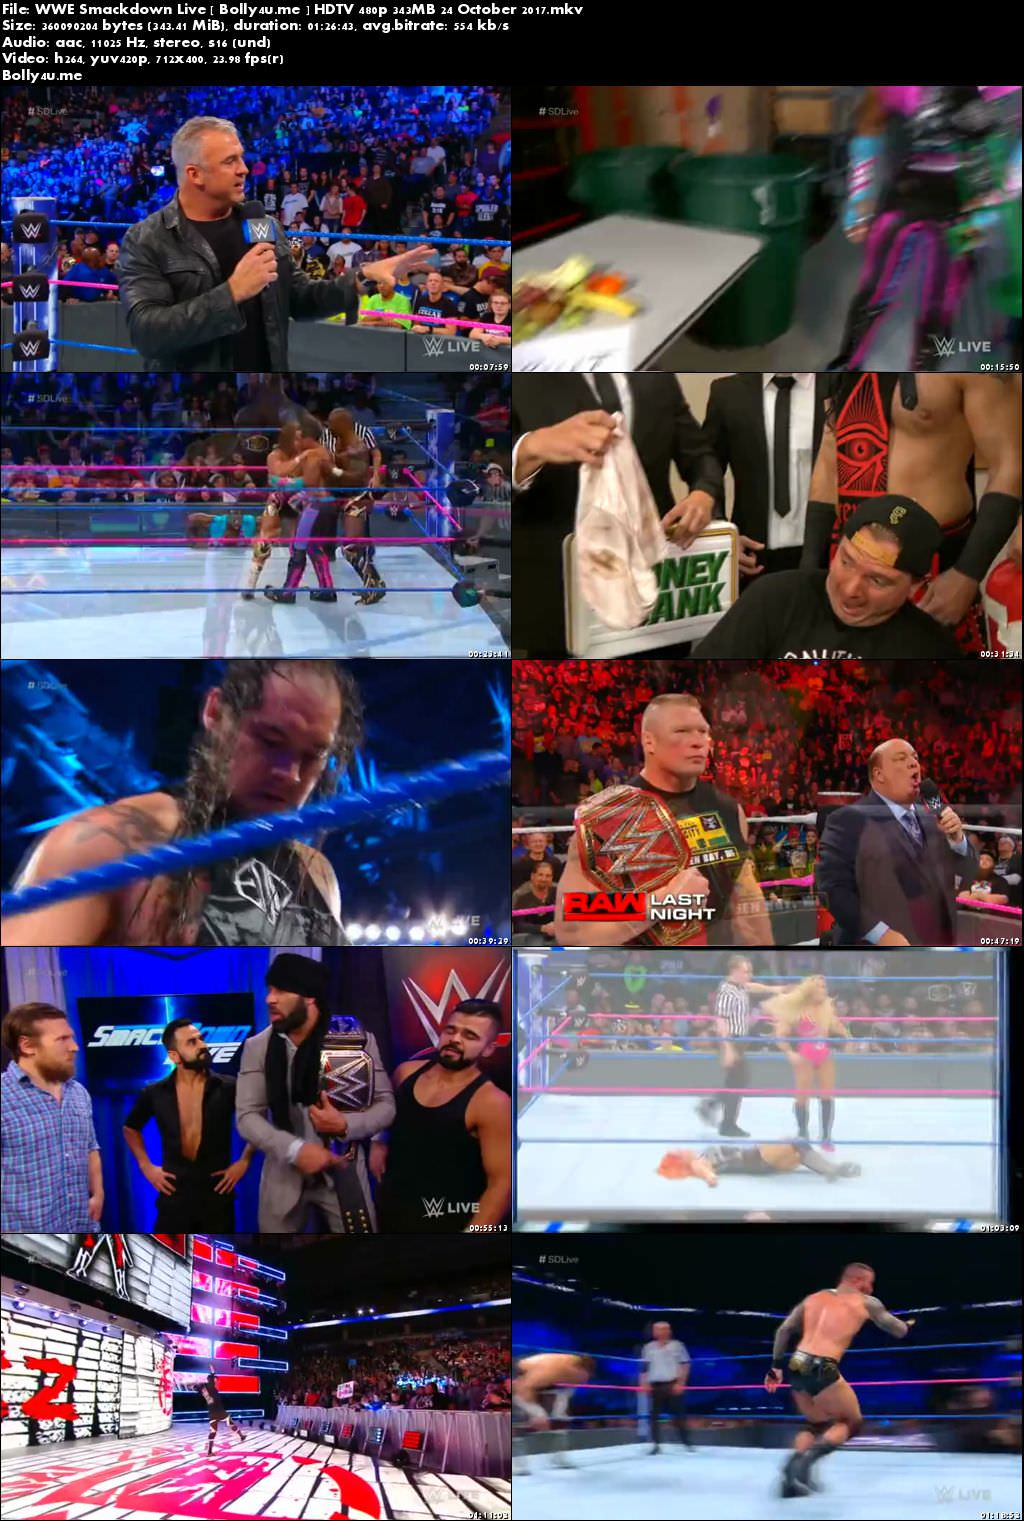 WWE Smackdown Live HDTV 480p 350MB 24 October 2017 Download